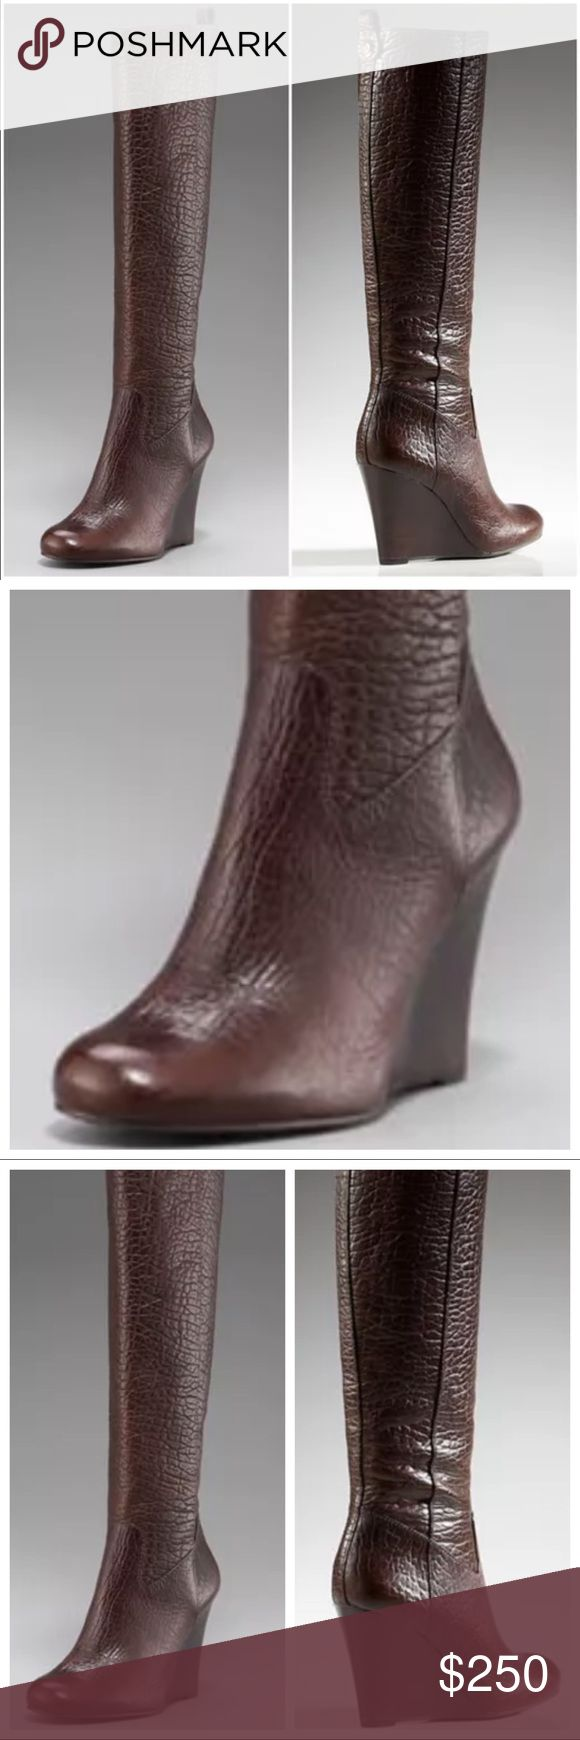 TORY BURCH Women's Pebbled Leather Wedge TORY BURCH Women's Pebbled Leather Wedge Boots Tall Brown Size 5 Tory Burch Shoes Heeled Boots